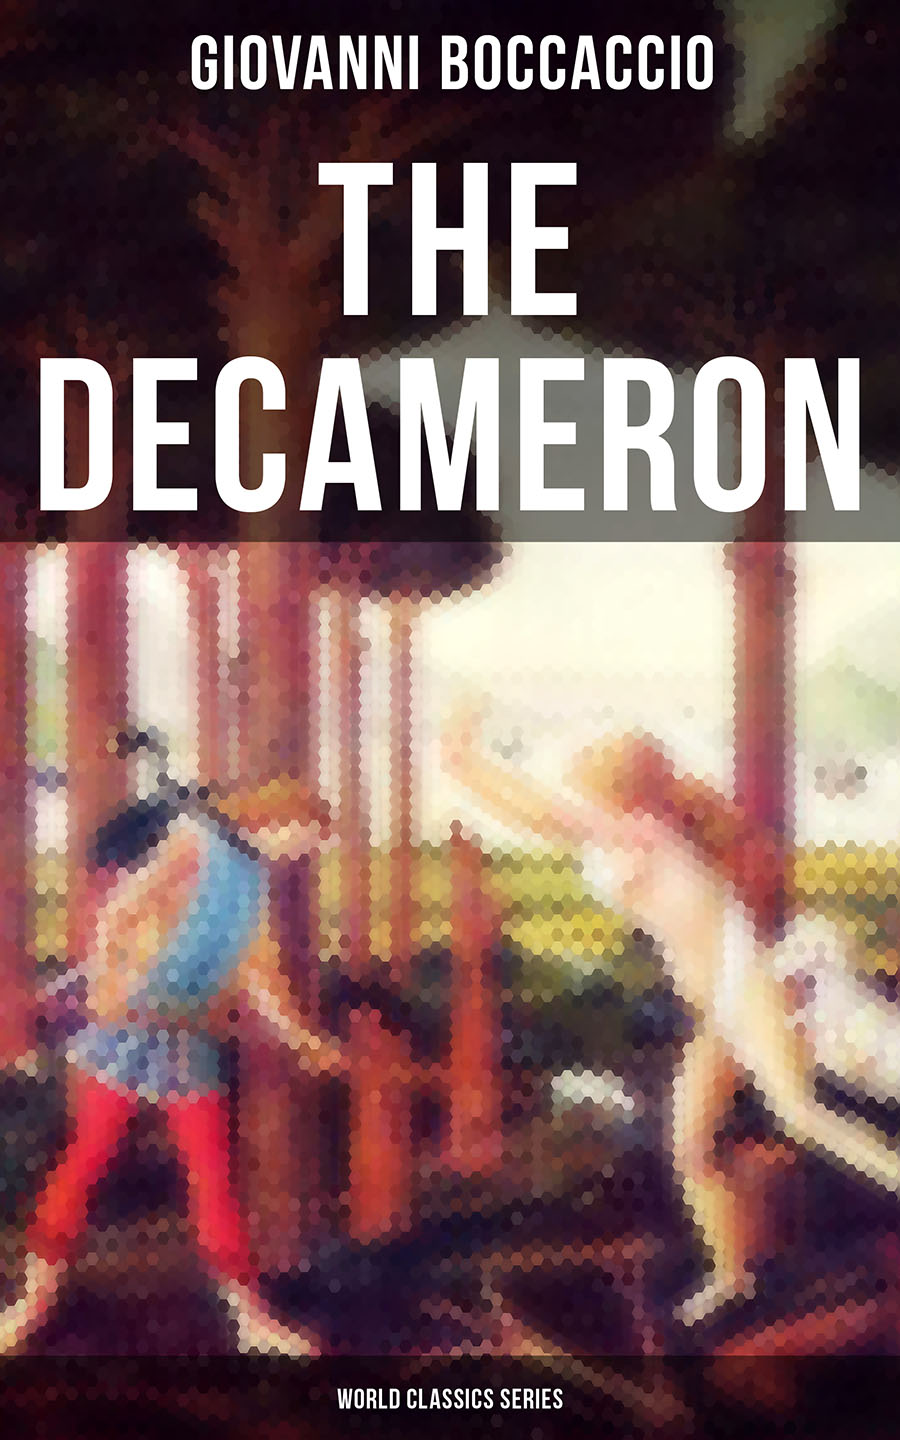 Джованни Боккаччо The Decameron (World Classics Series)